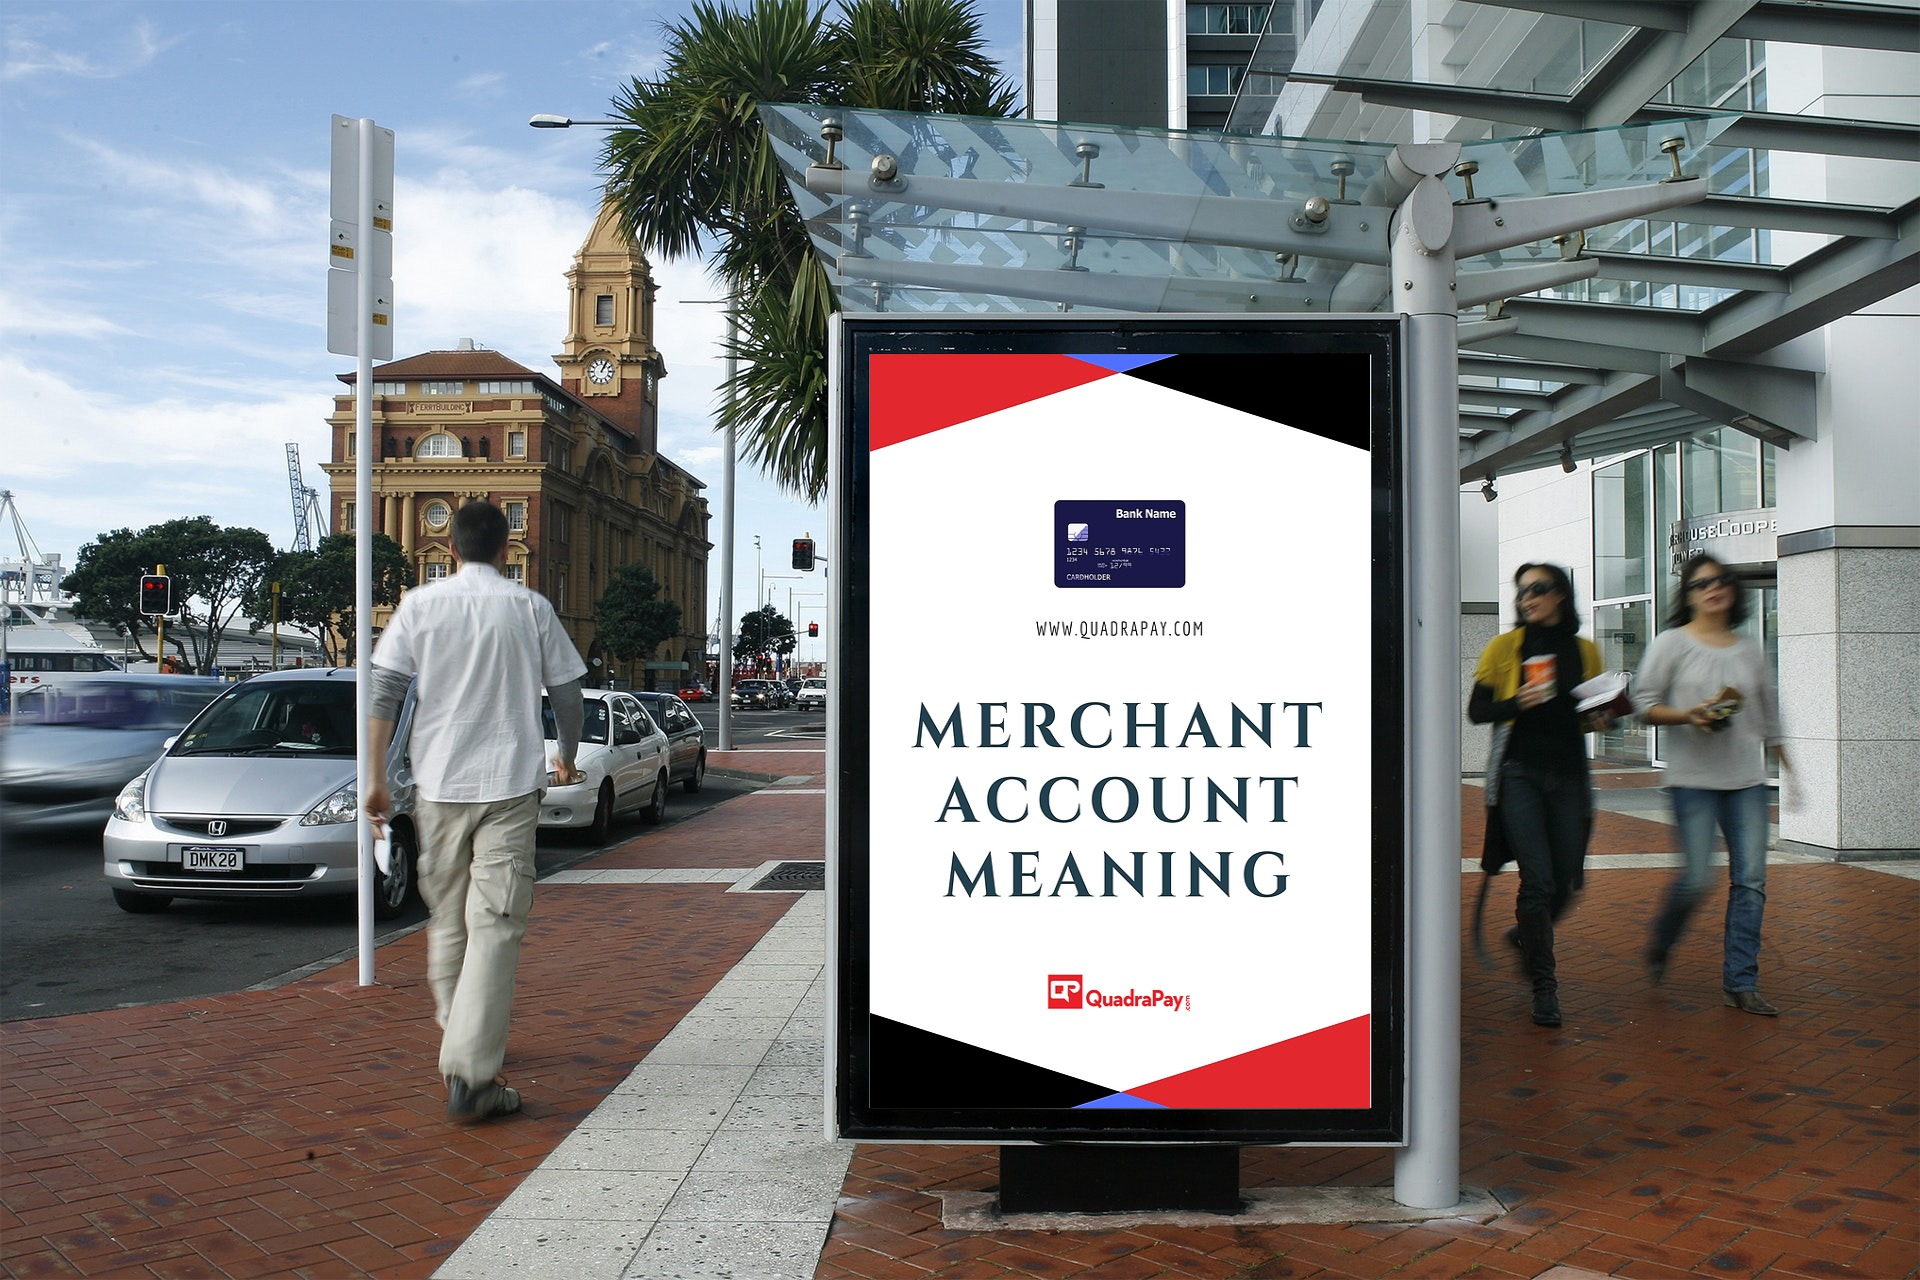 Merchant Account Meaning By Quadrapay